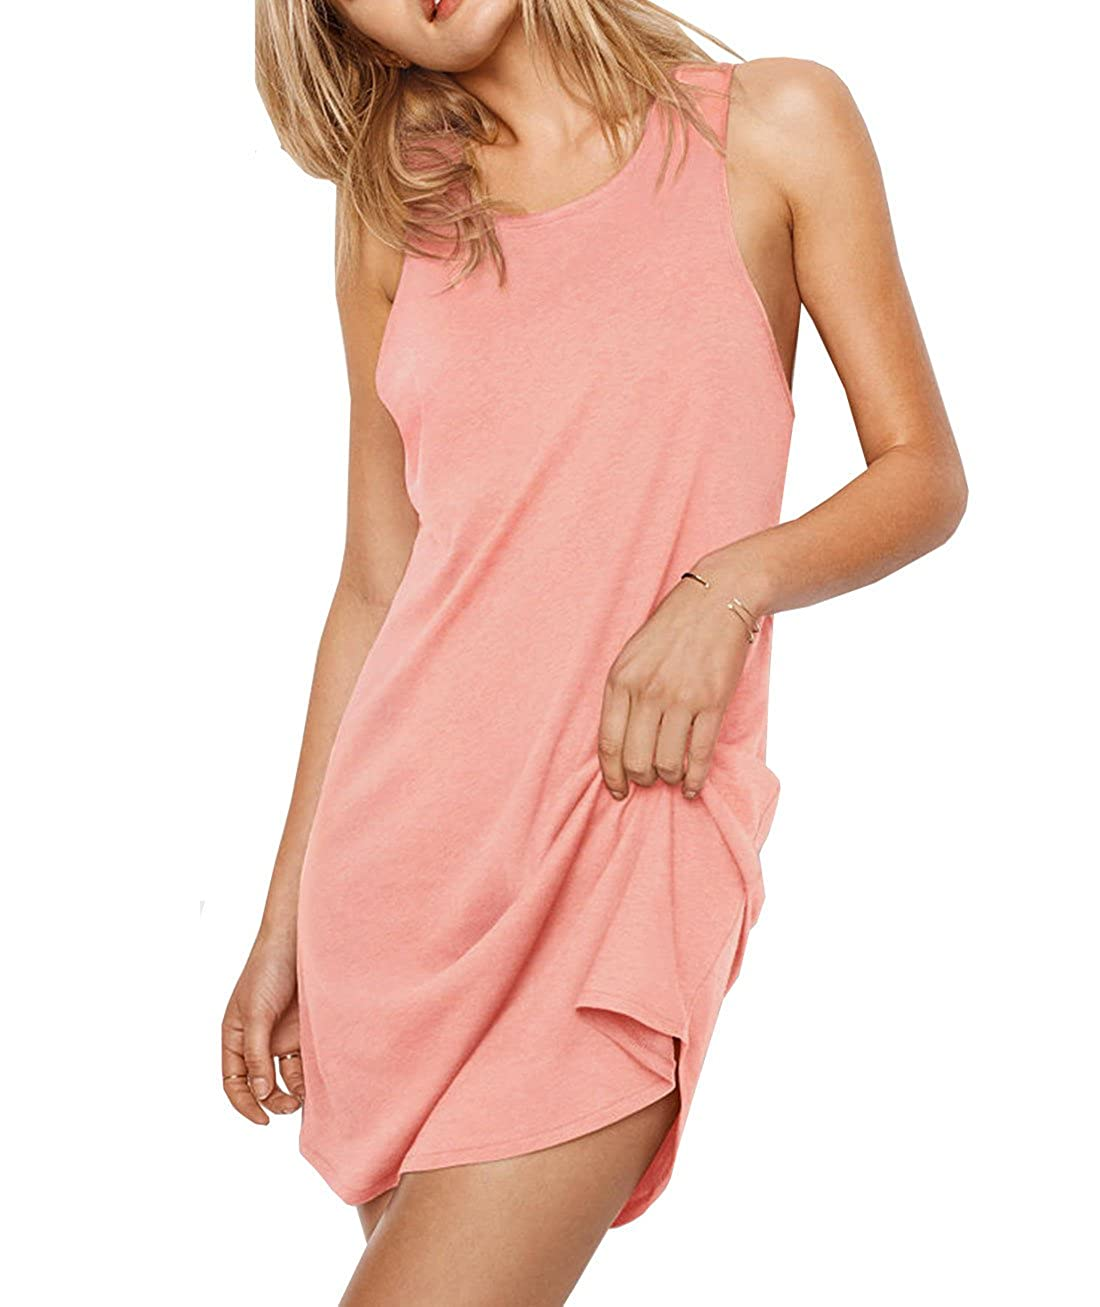 179cfc58567 Top 10 wholesale I Only Sleep In Pink Pajamas - Chinabrands.com